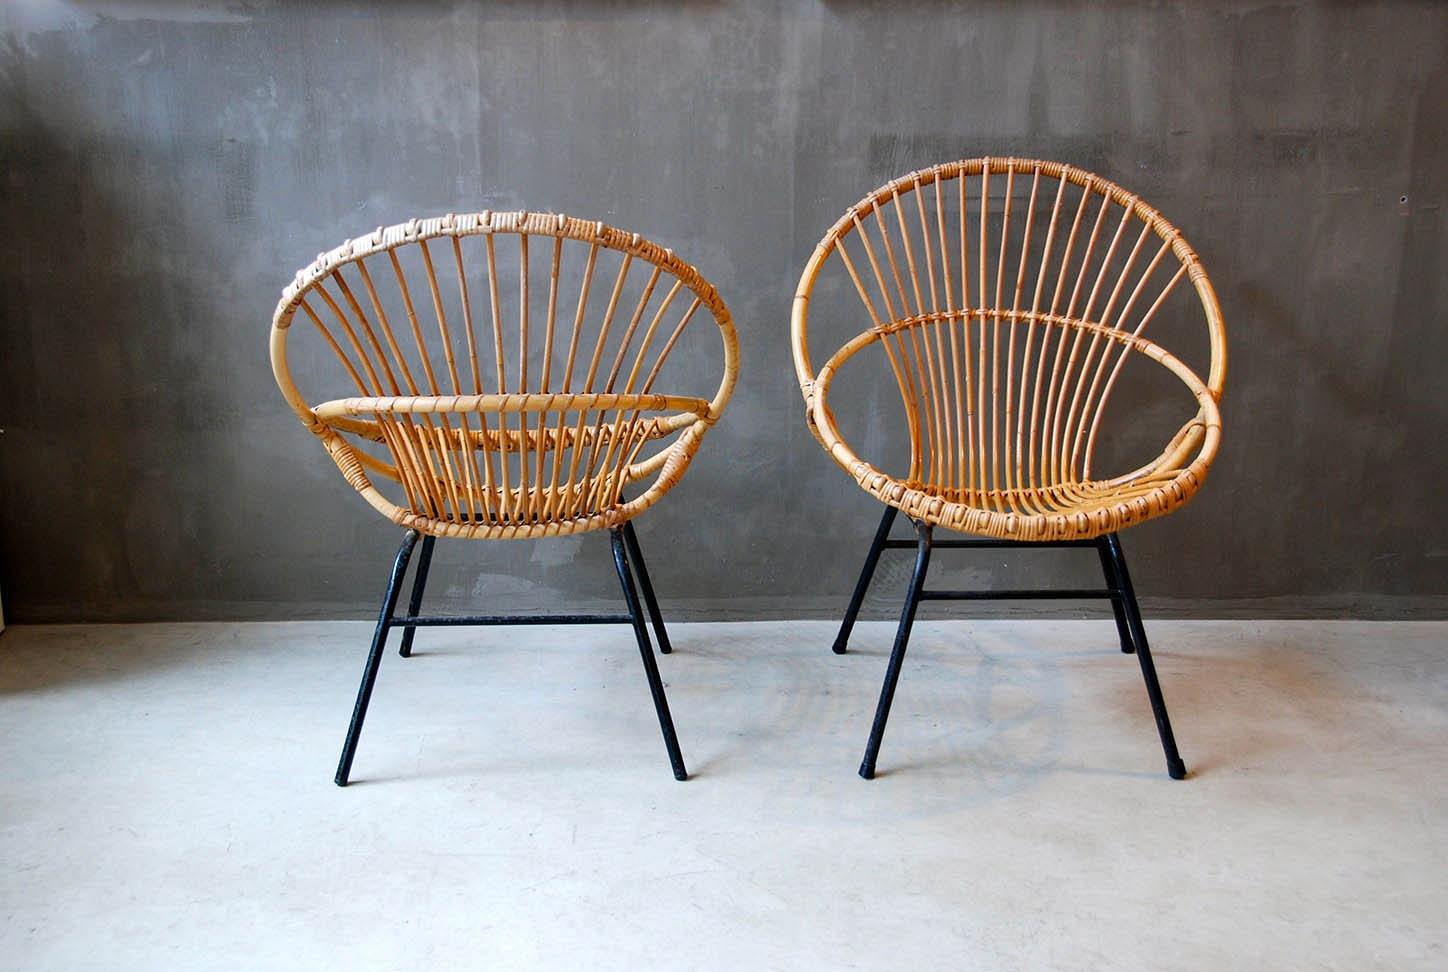 Pair of seats in whicker